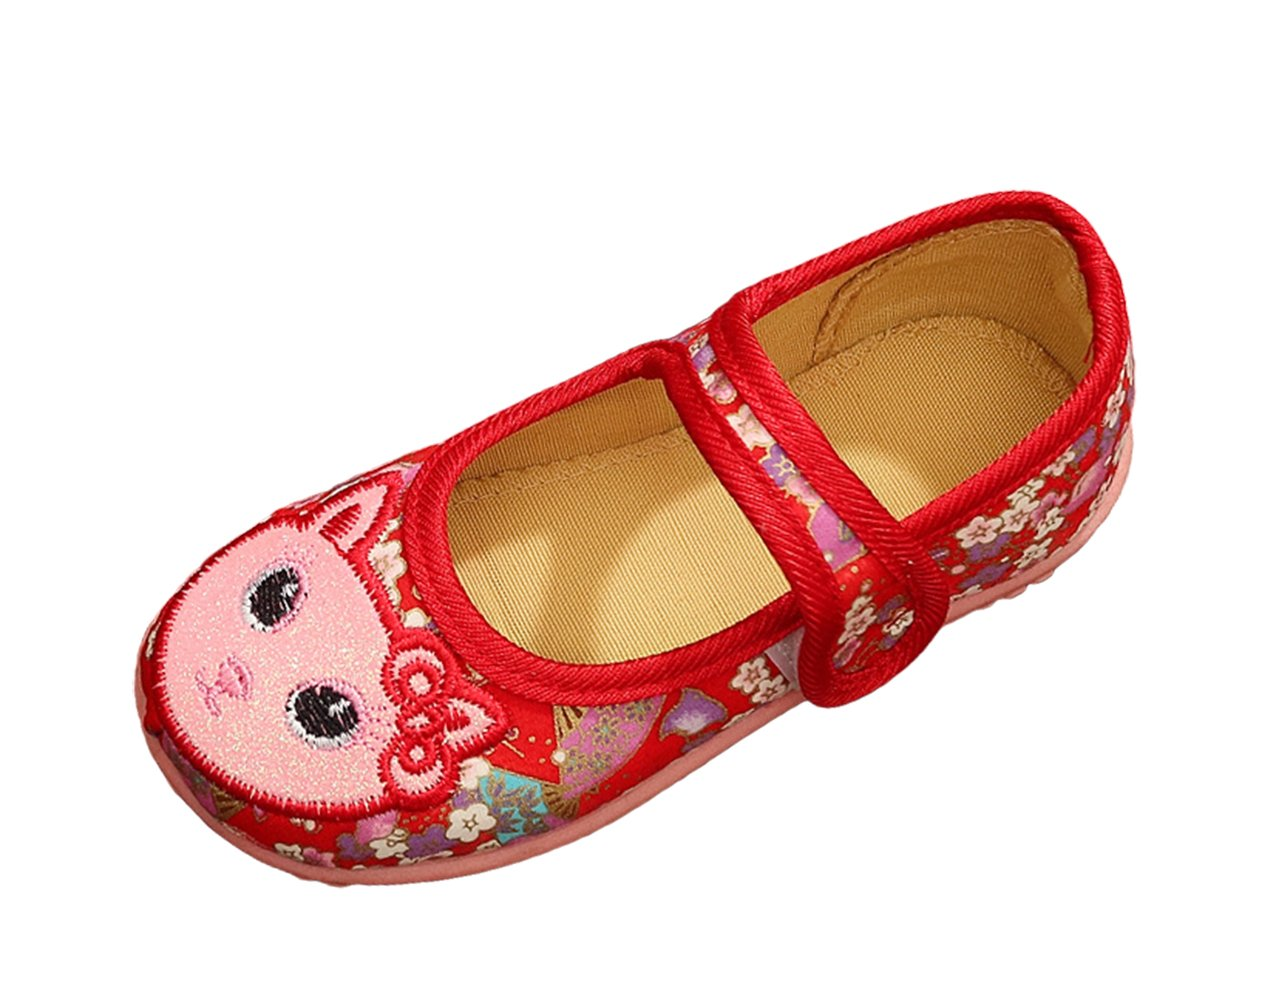 AvaCostume Girls Cat Embroidery Golden Stroke Pattern Cute Dress Shoes, Red 29